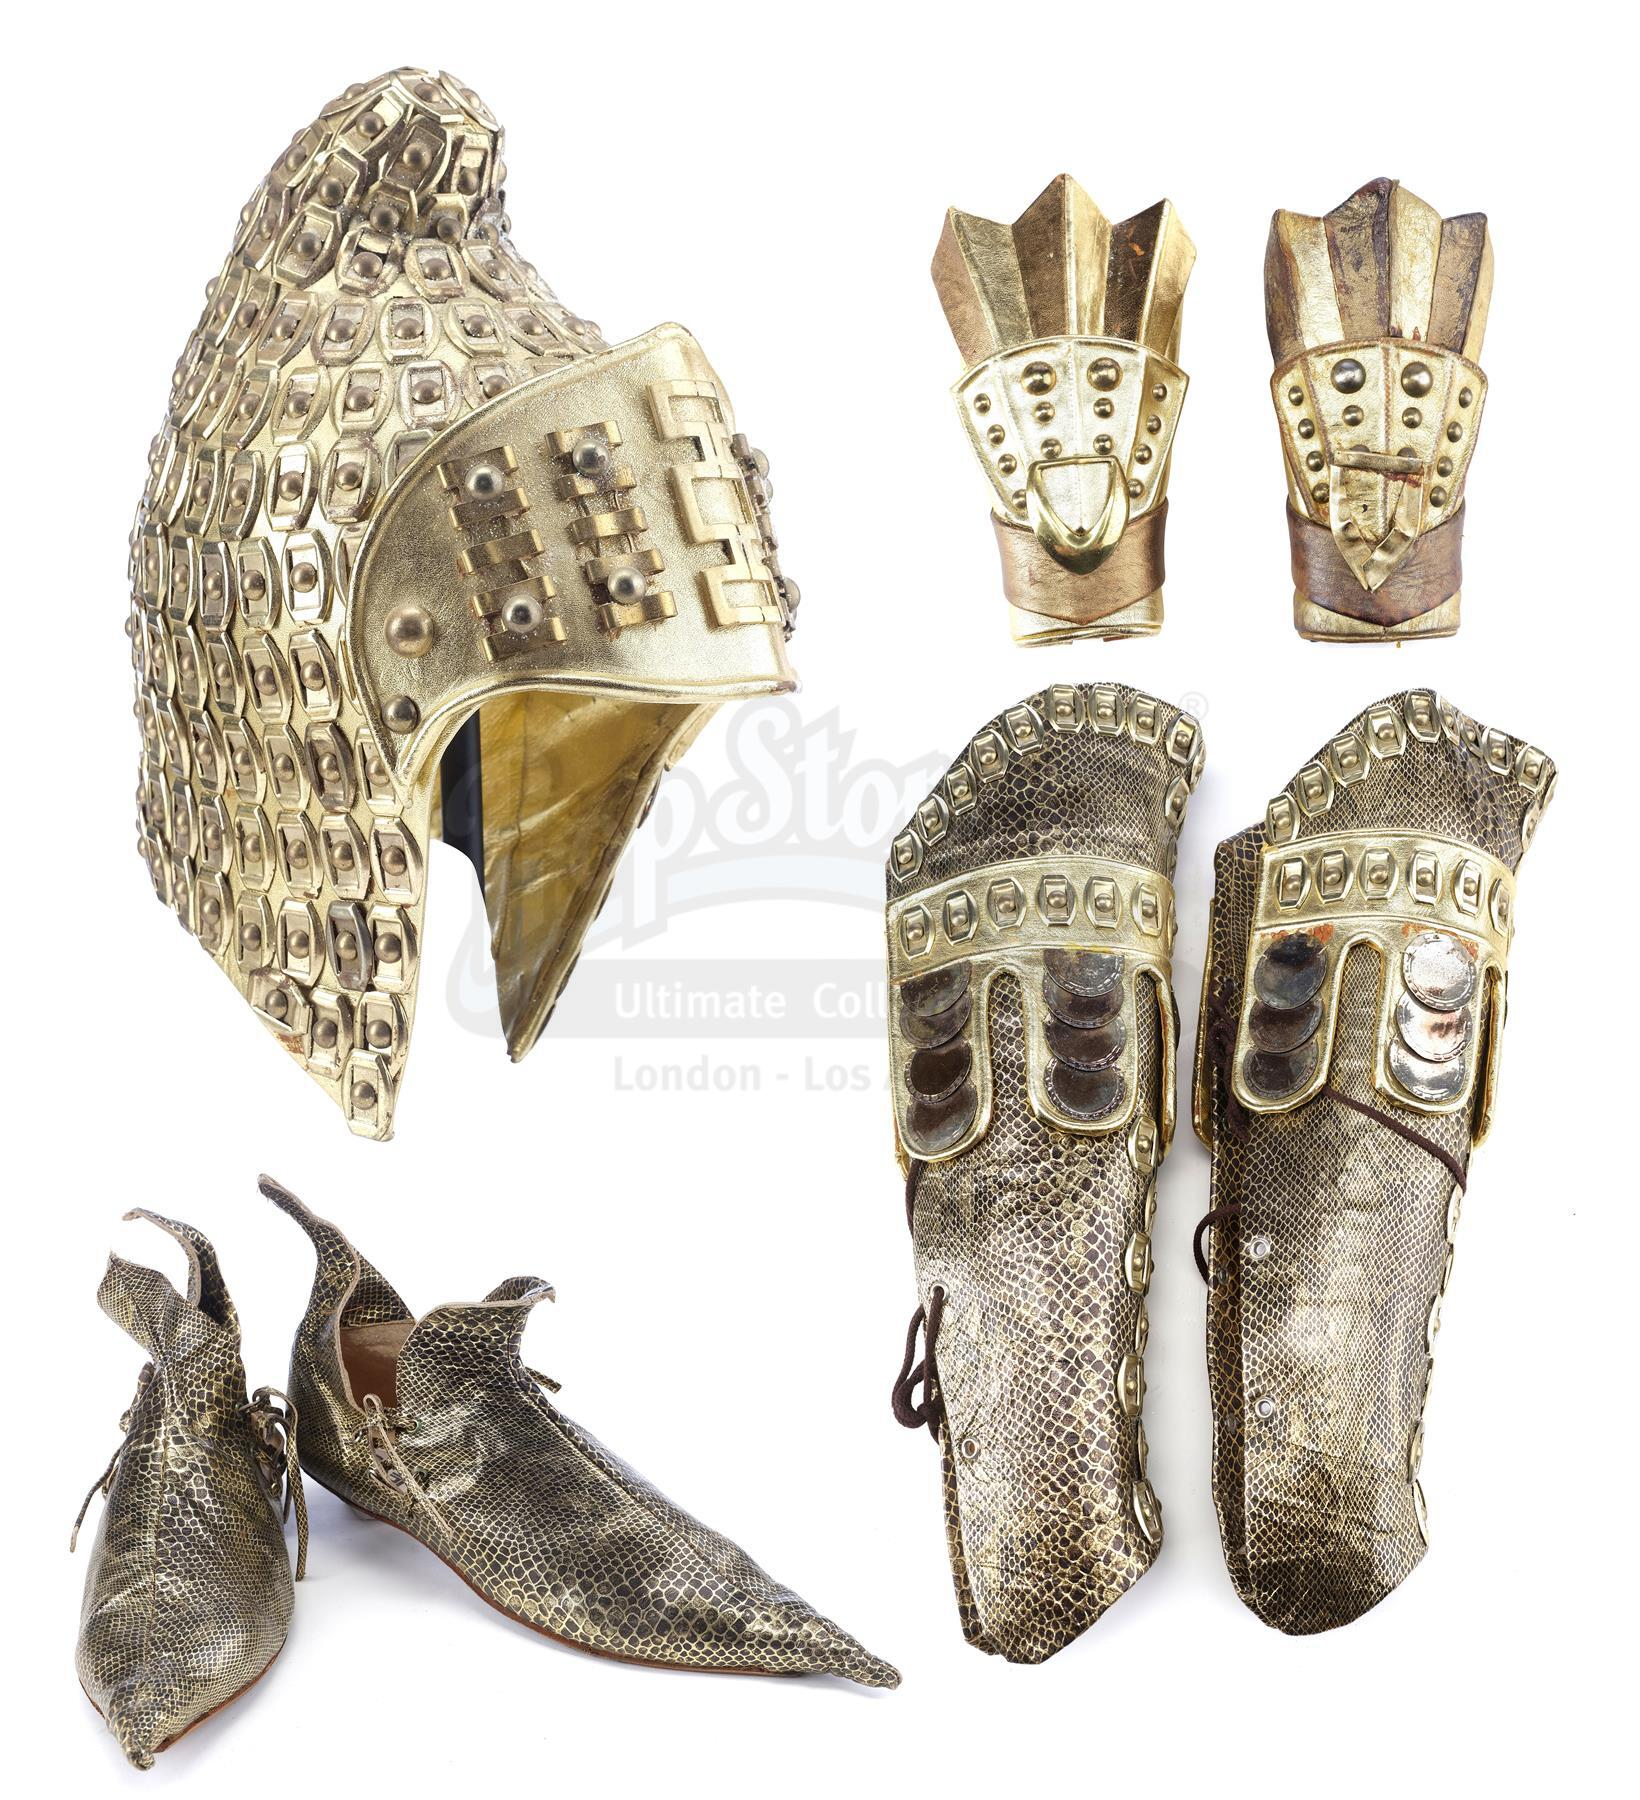 Lot # 164: LEGEND - Jack's (Tom Cruise) Armor Components and Shoes